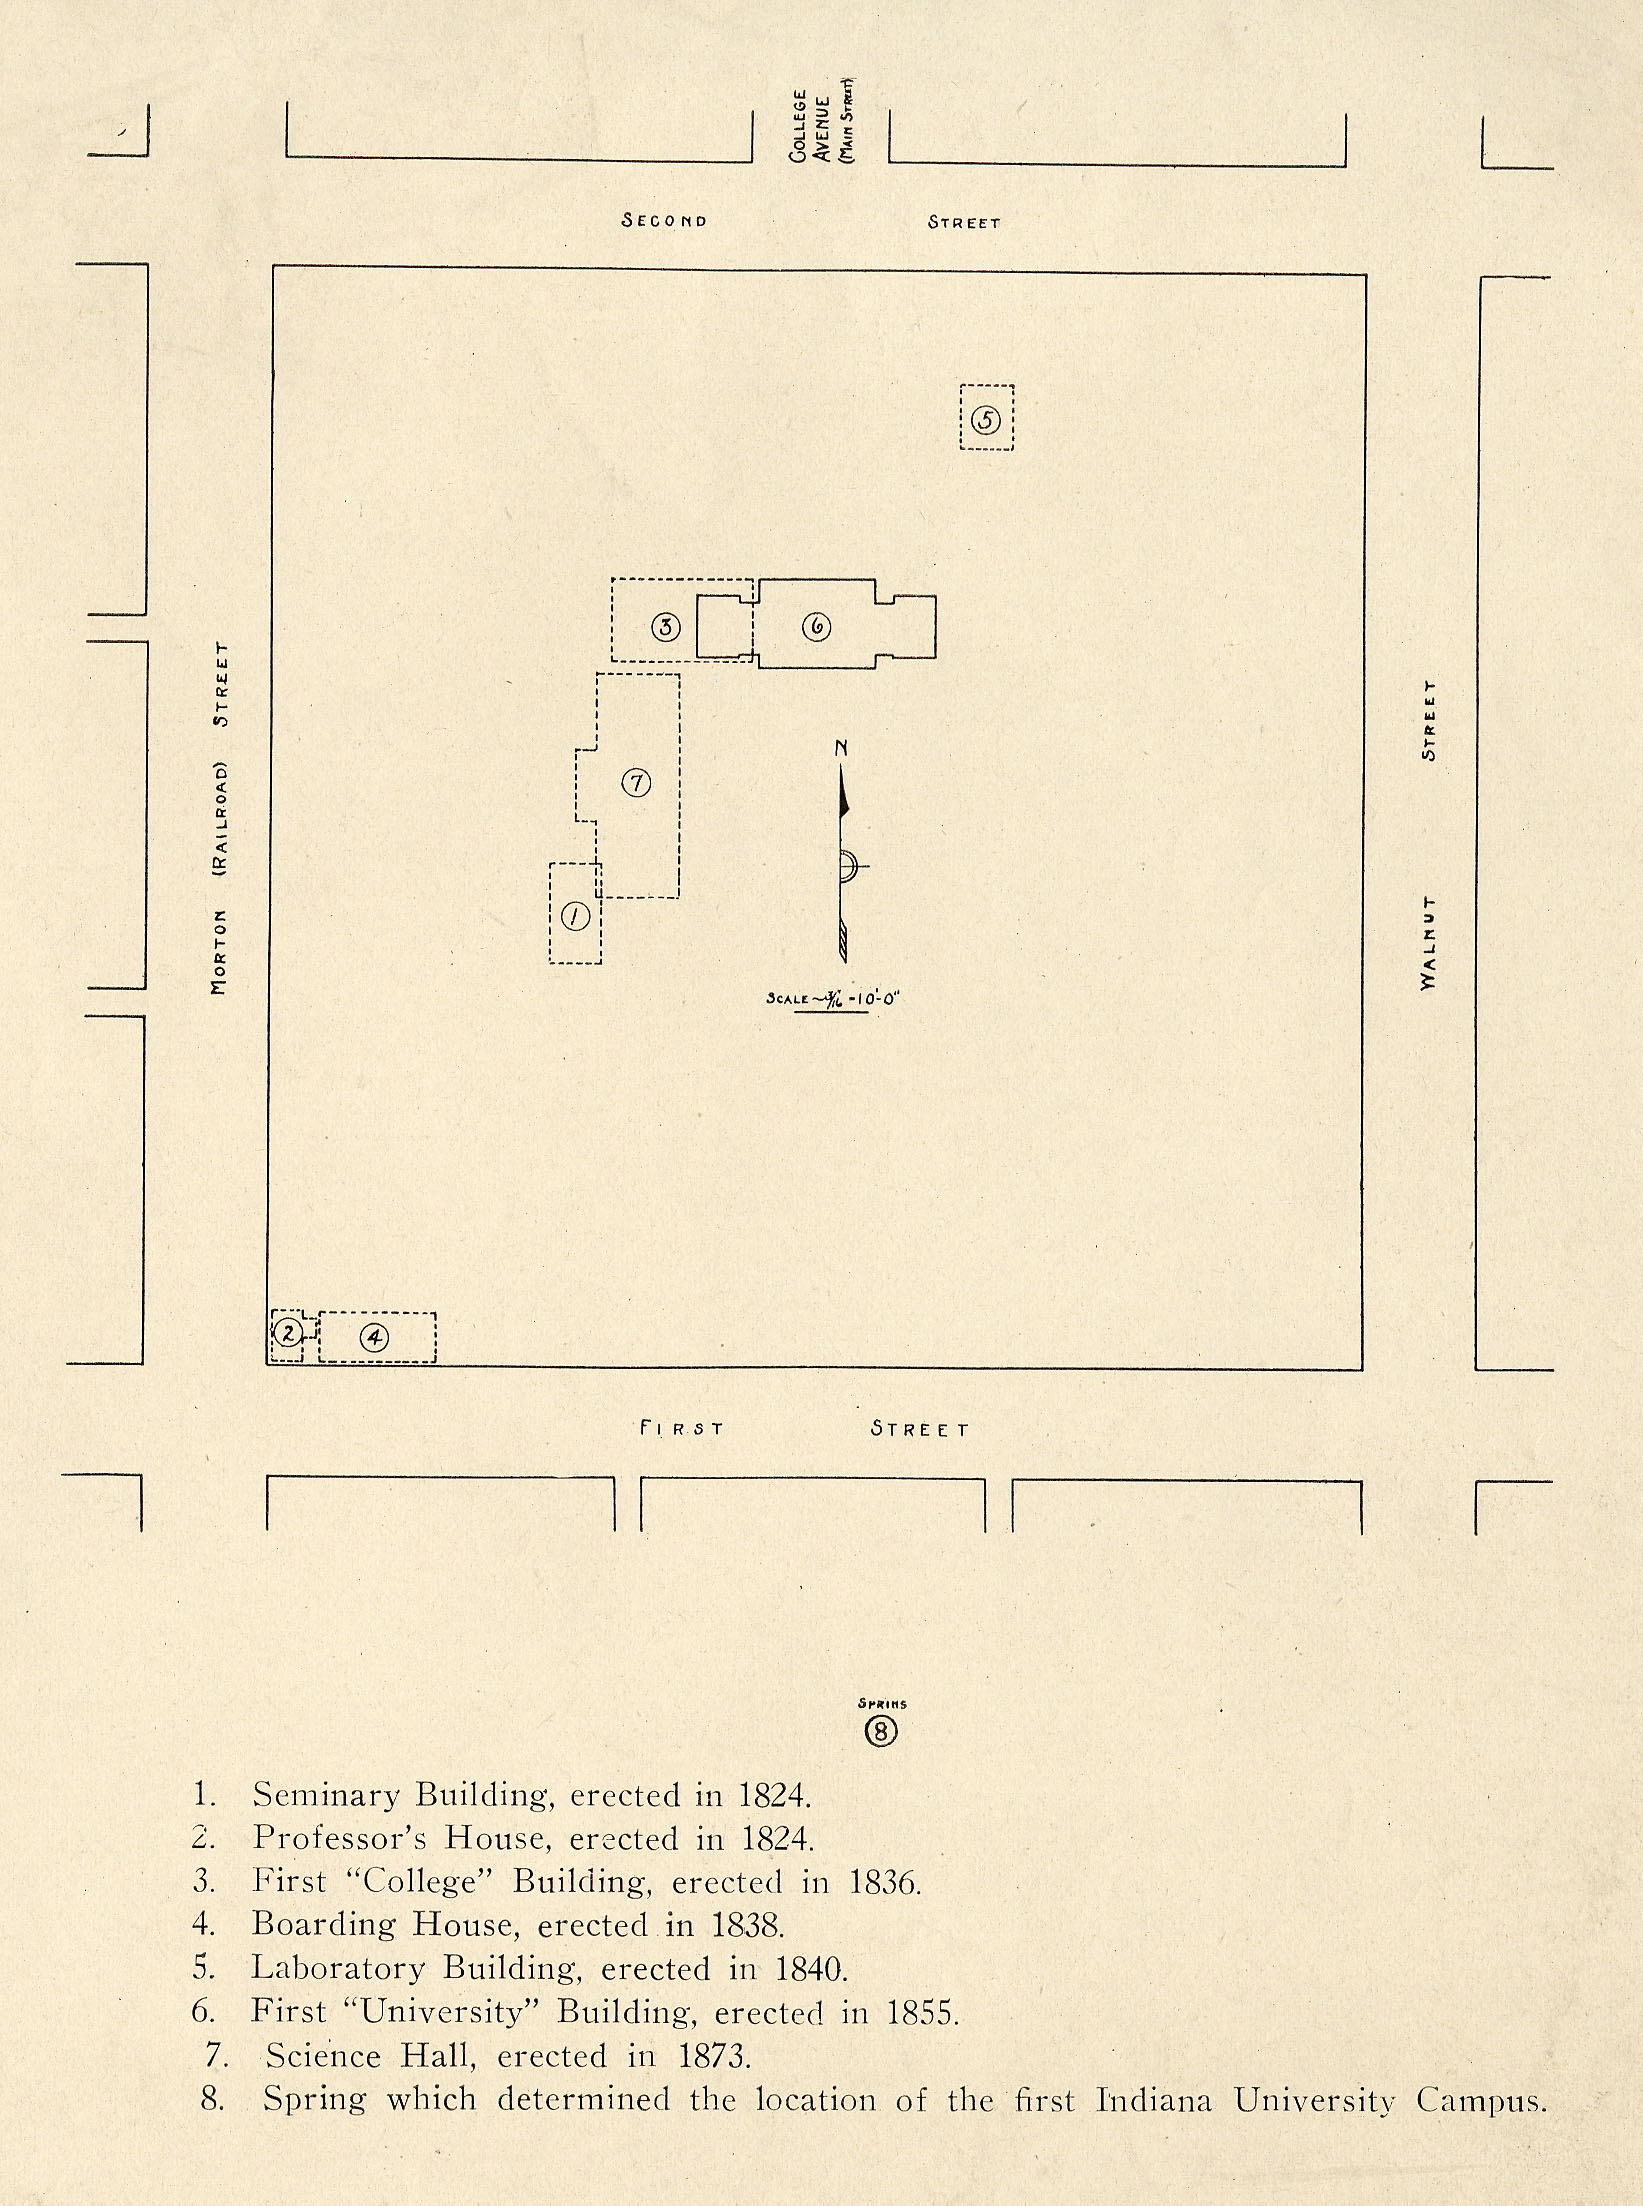 The original plan of the Seminary Square Campus. The baseball field was located in the southwest corner. College Avenue now runs the old grounds which since have been converted.